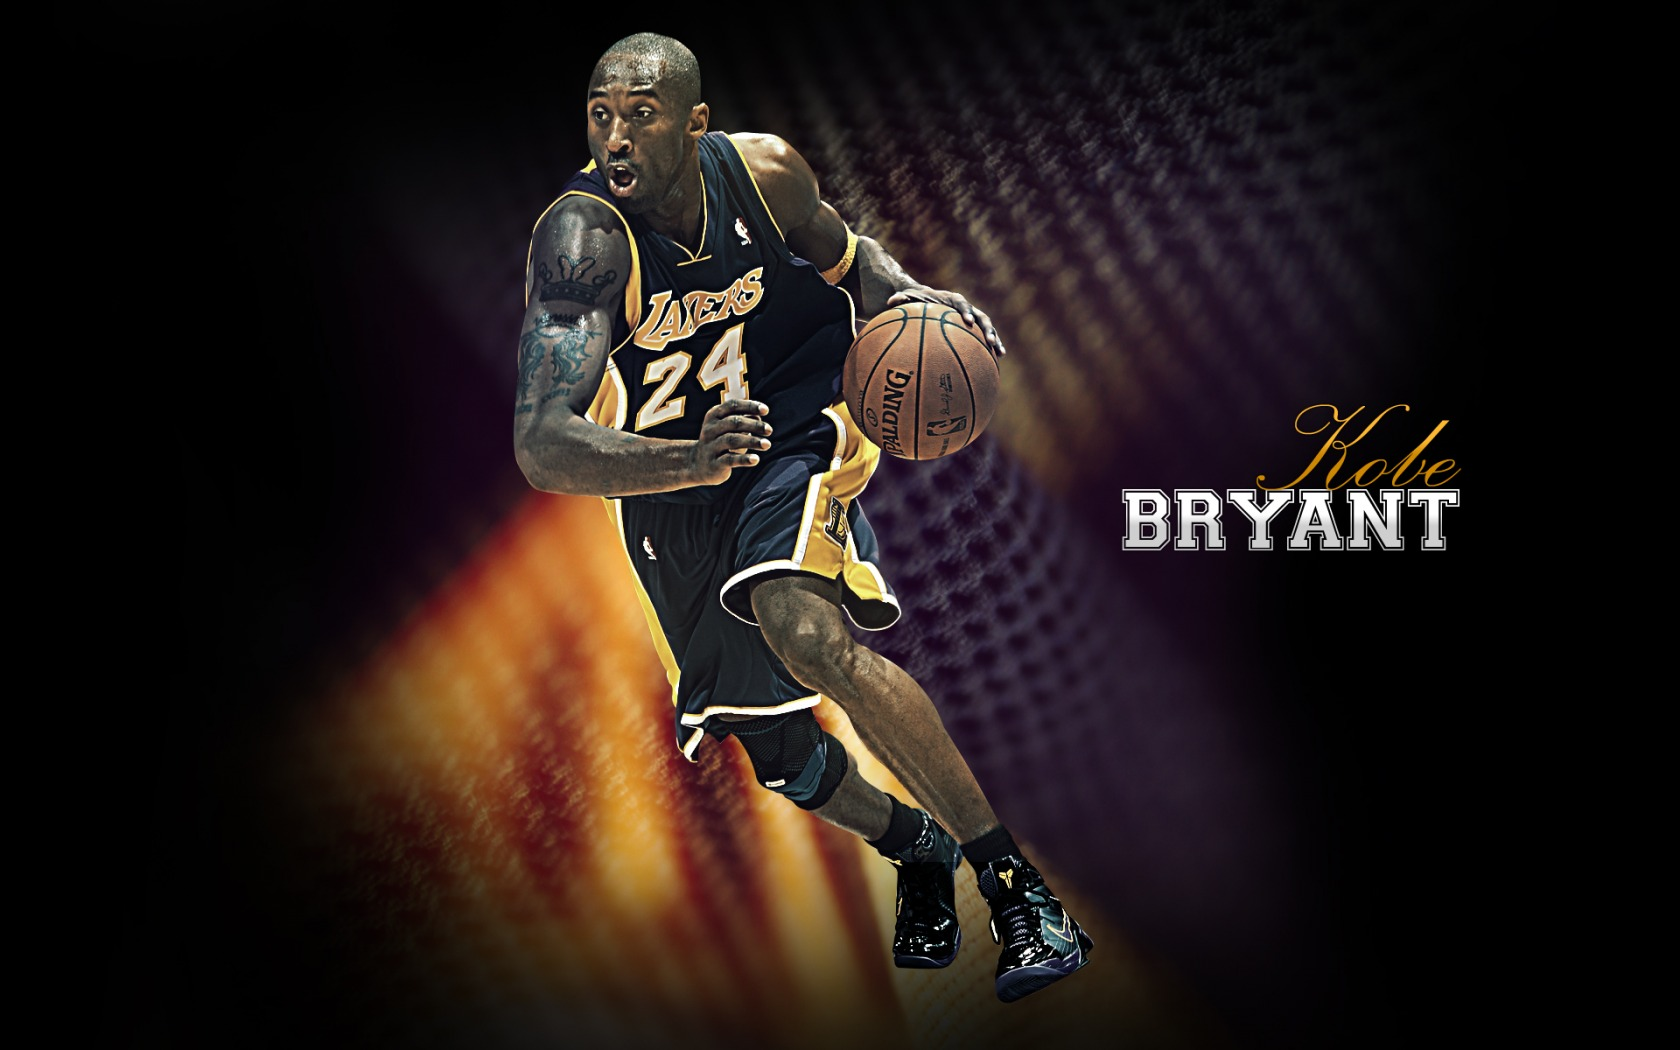 Top Free Dope Nba Backgrounds: Kobe Bryant Wallpaper NBA Sports Wallpapers In Jpg Format